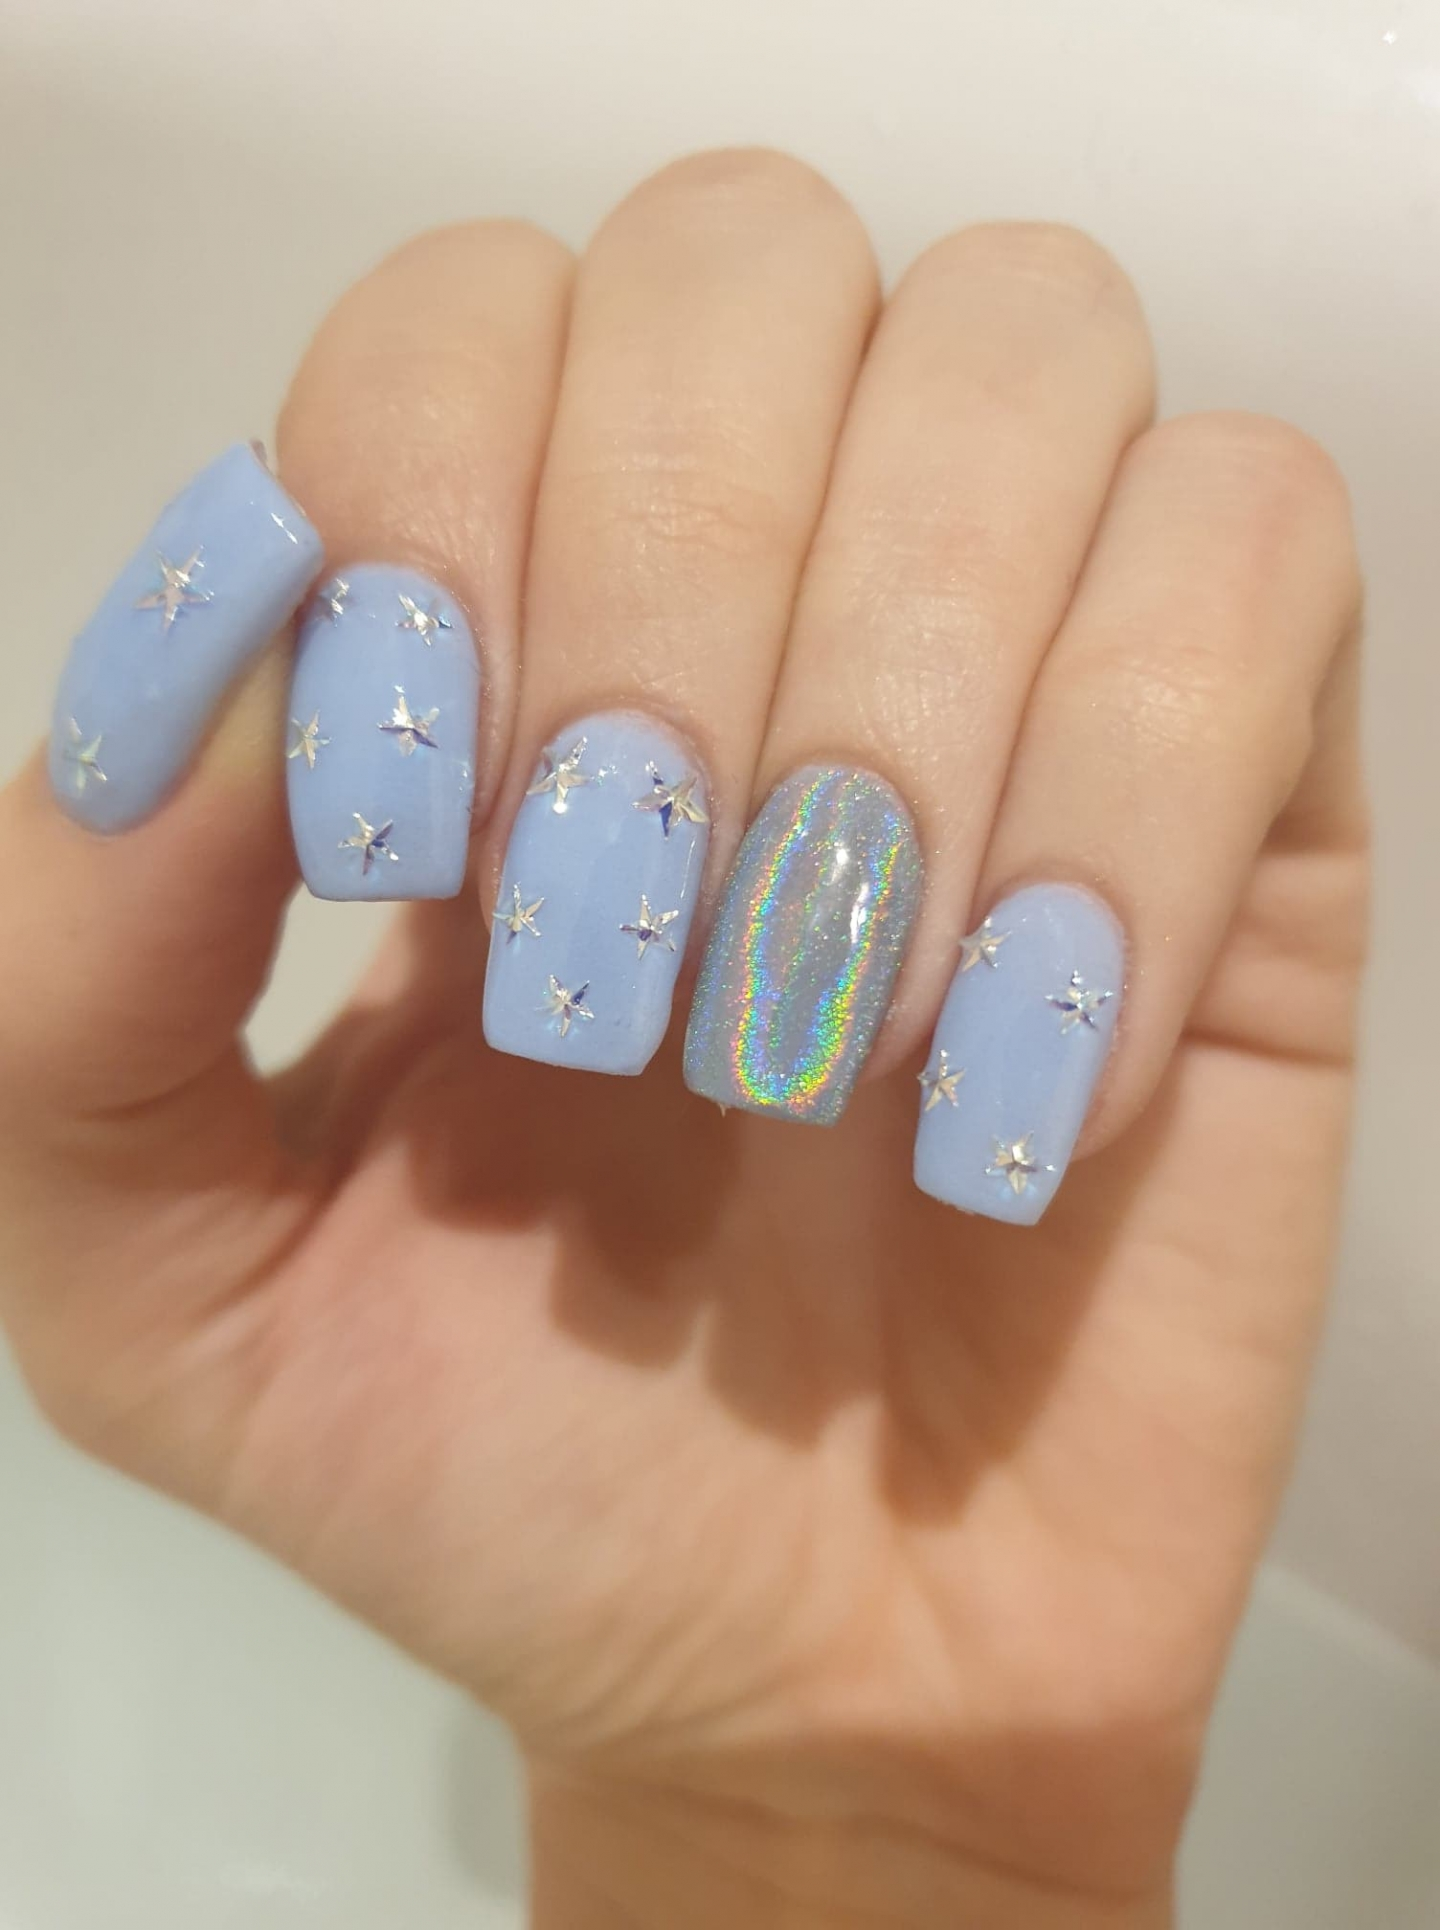 Blue star and holographic SNS nails manicure